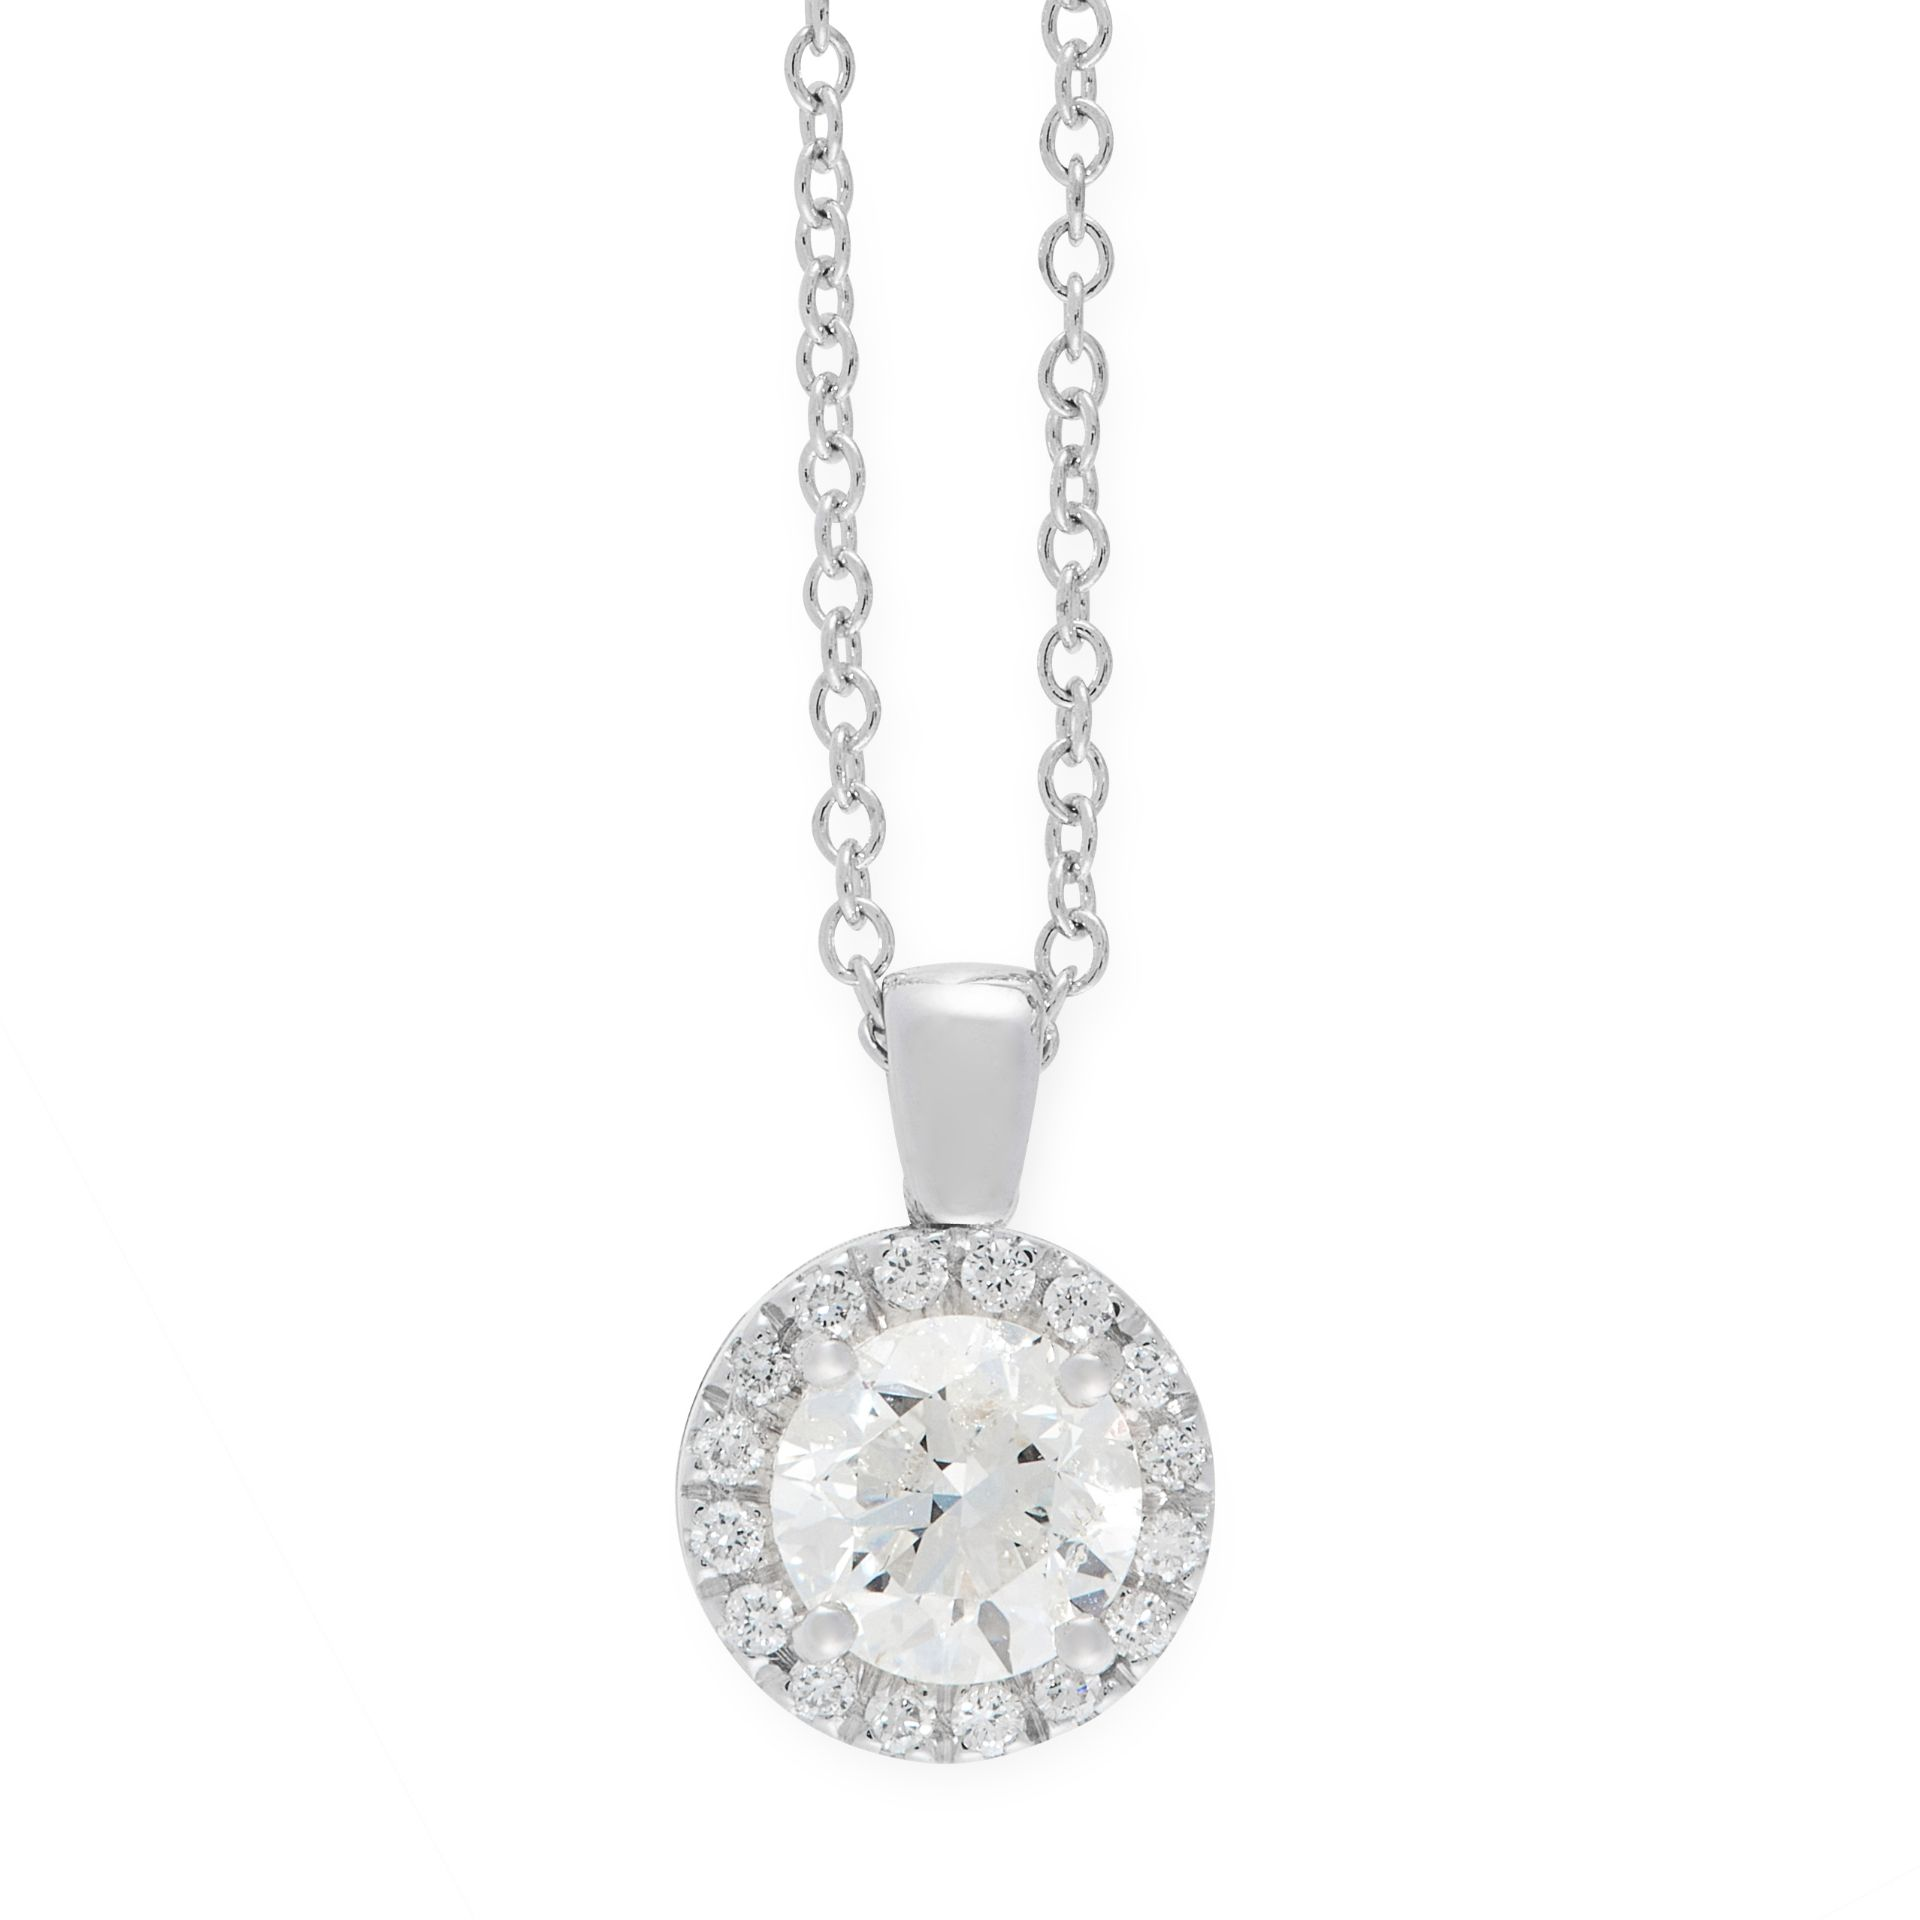 A DIAMOND PENDANT AND CHAIN in 18ct white gold, comprising of a central round cut diamond of 0.87